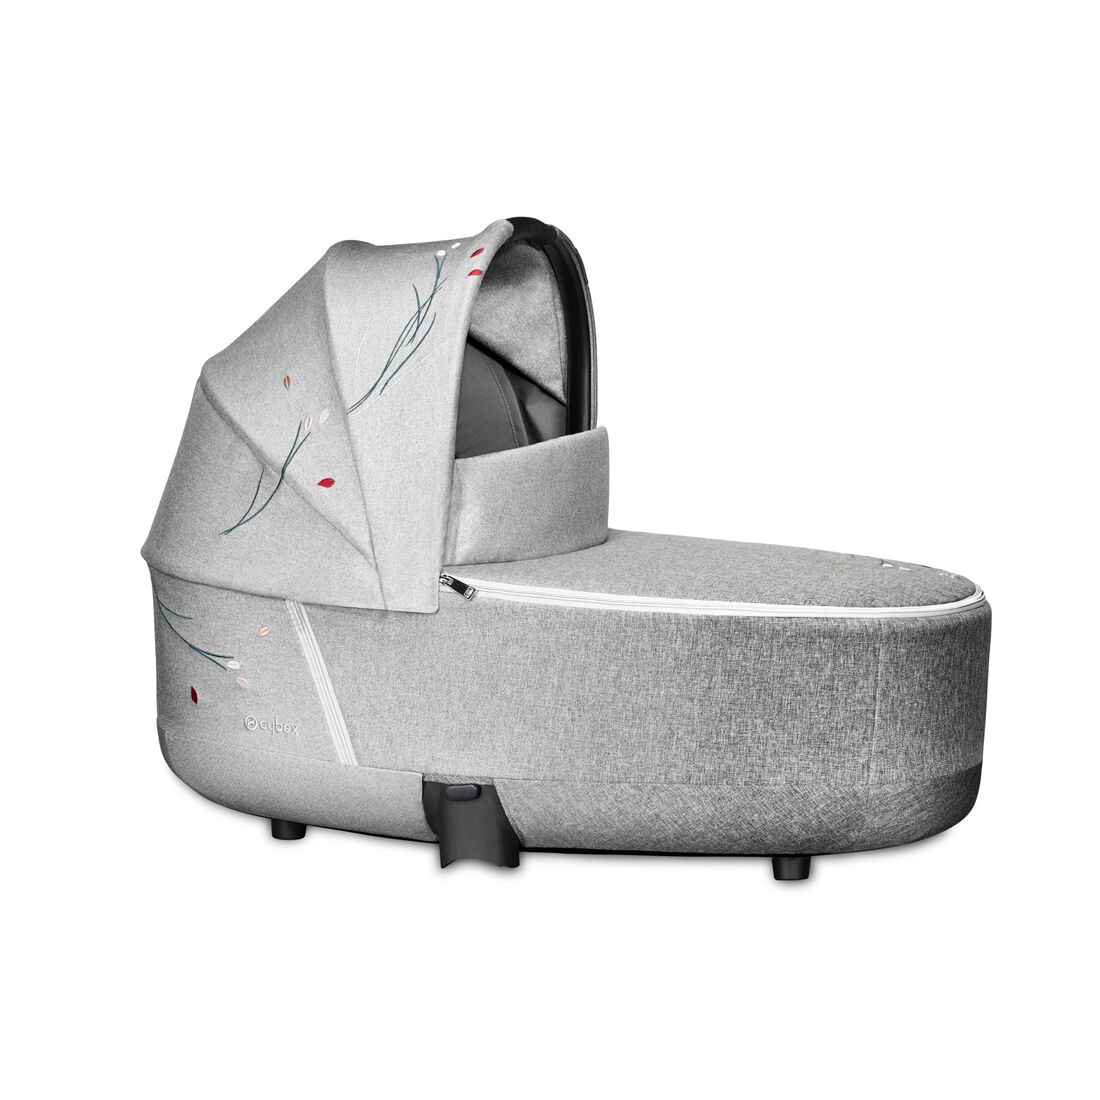 CYBEX Priam Lux Carry Cot - Koi in Koi large Bild 1